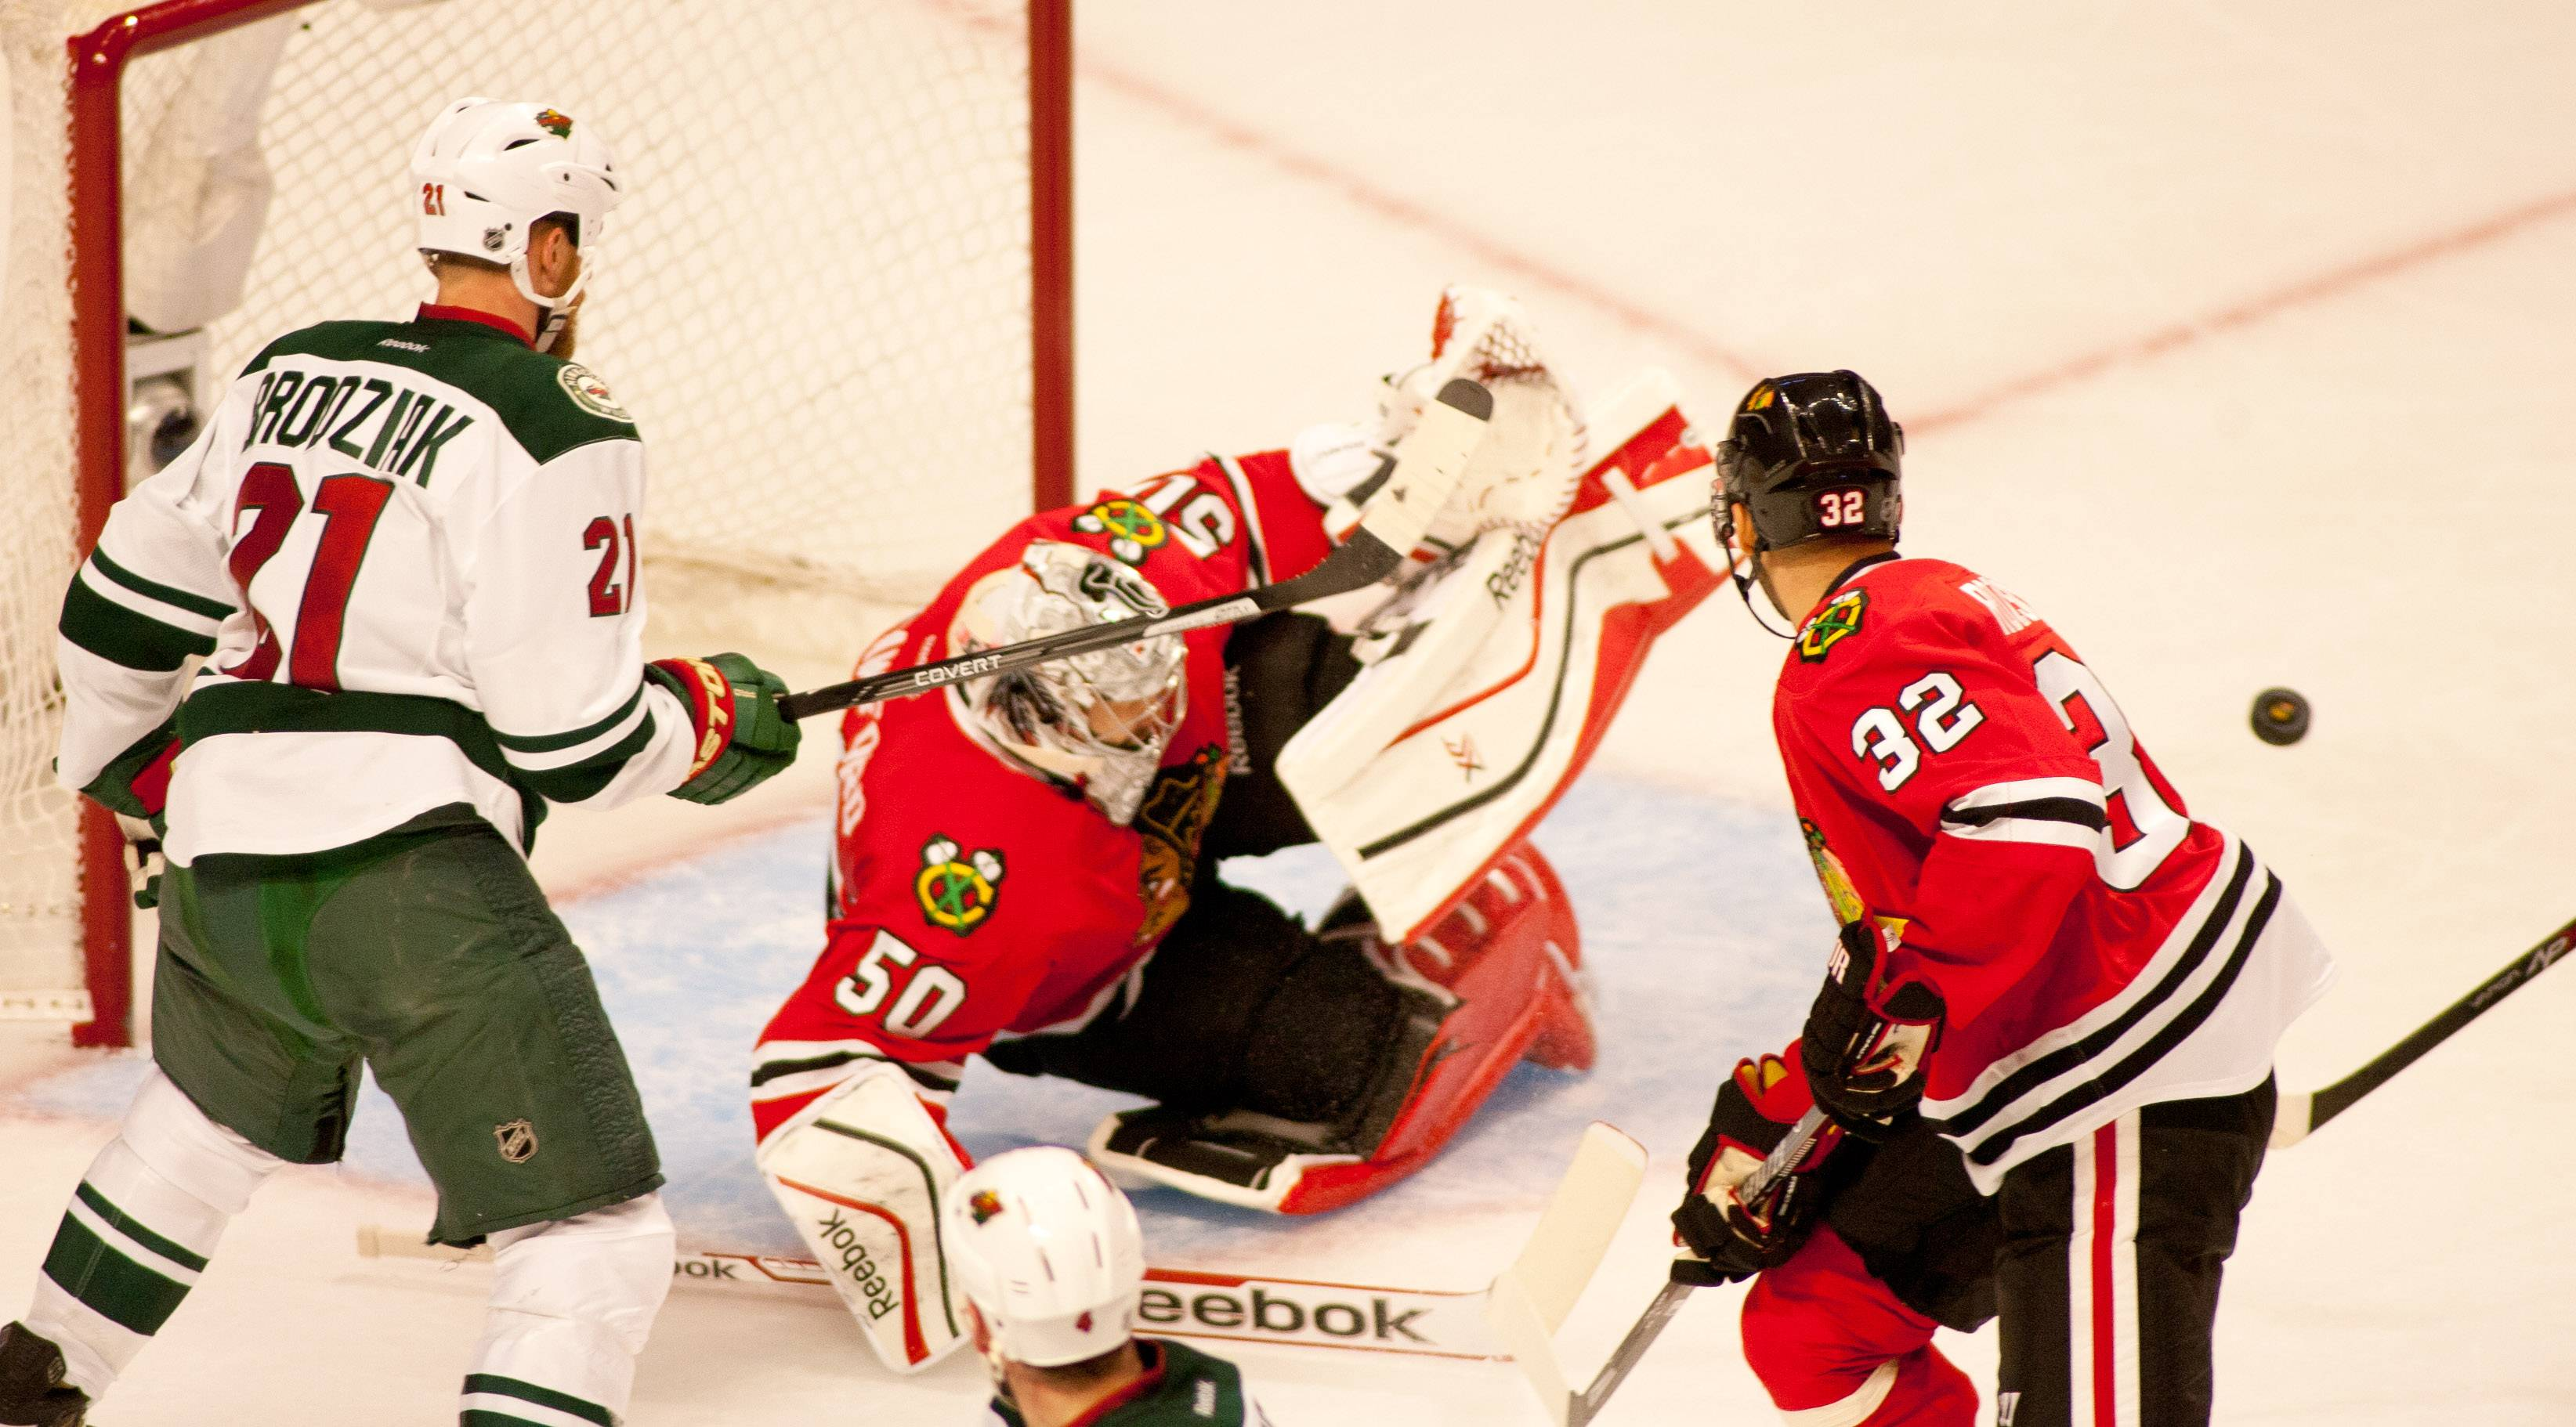 Blackhawks goalie Corey Crawford makes a second-period save Friday night in Game 1 against the Wild.